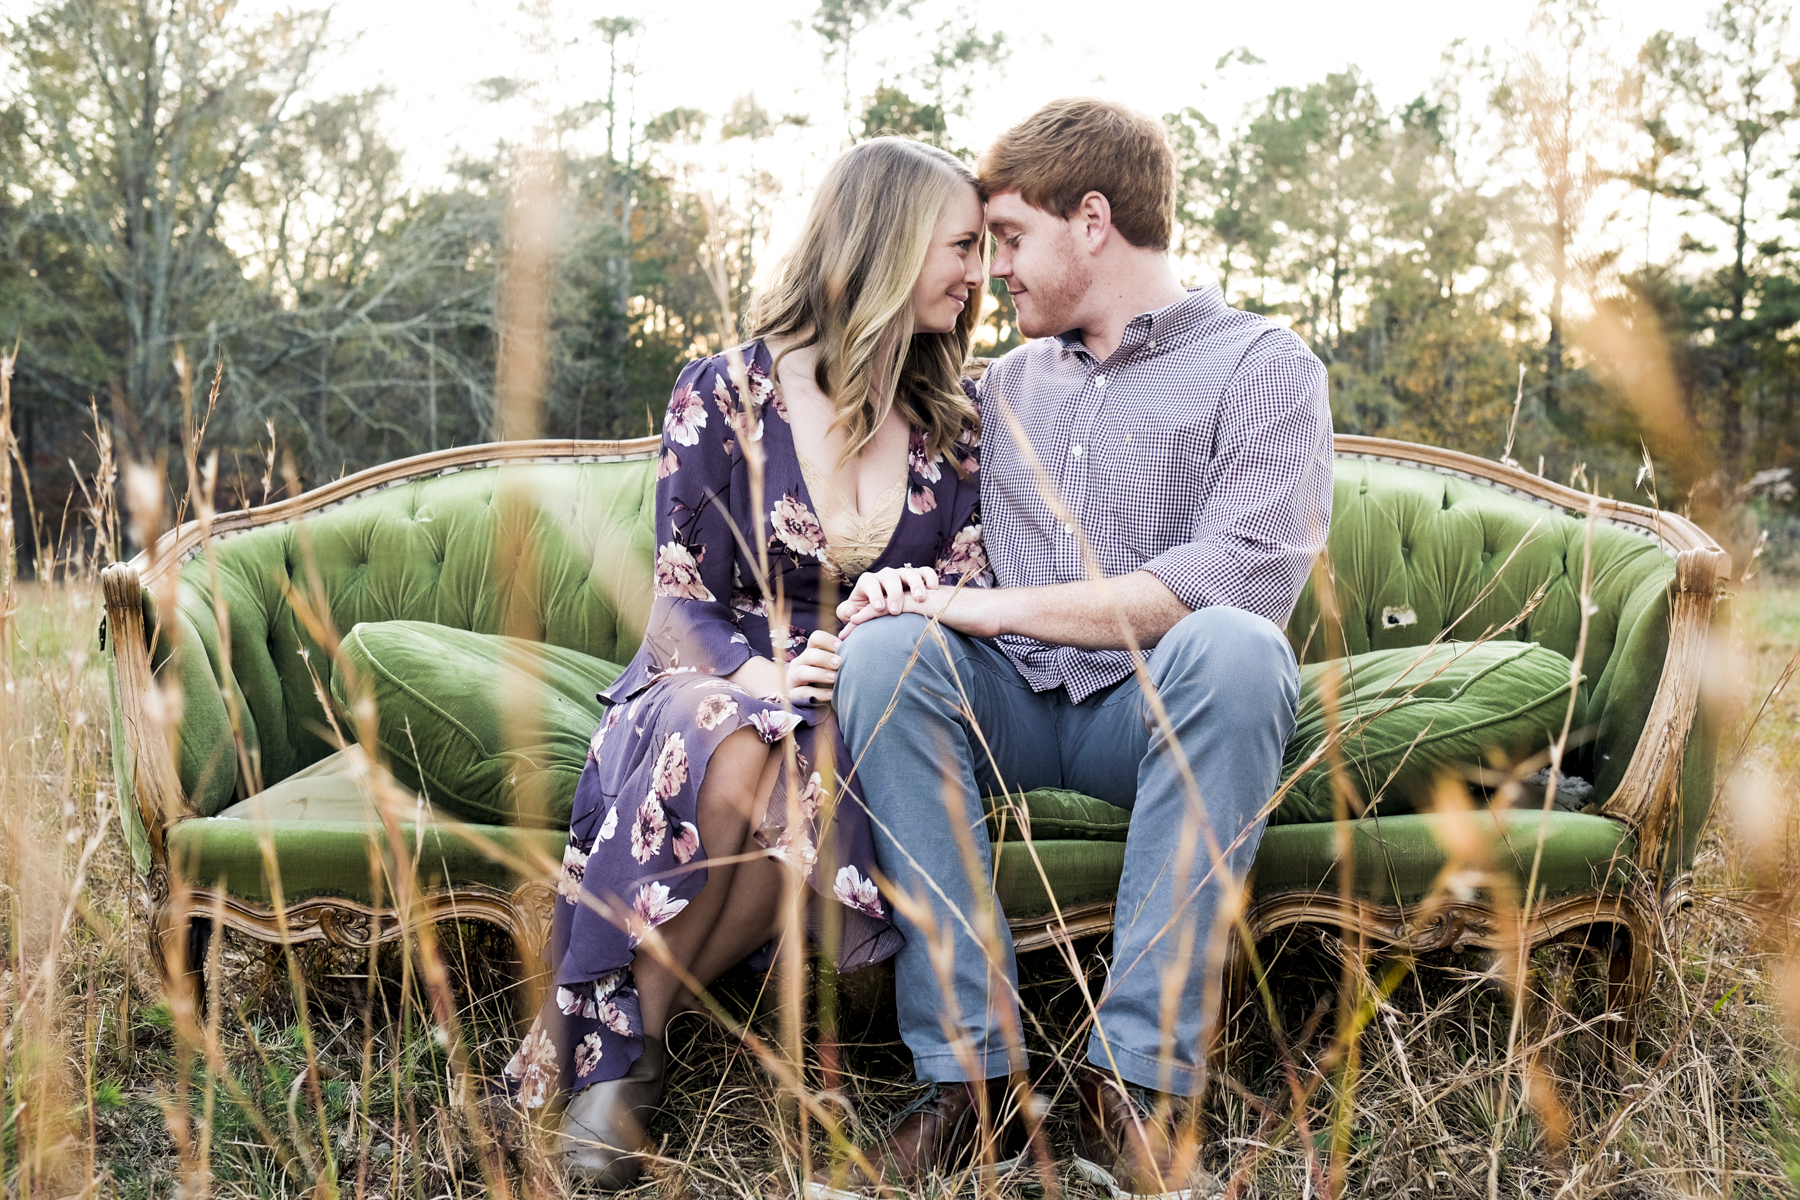 engagement_photography_austin_texas_bailey_toksoz_photography_23.jpeg